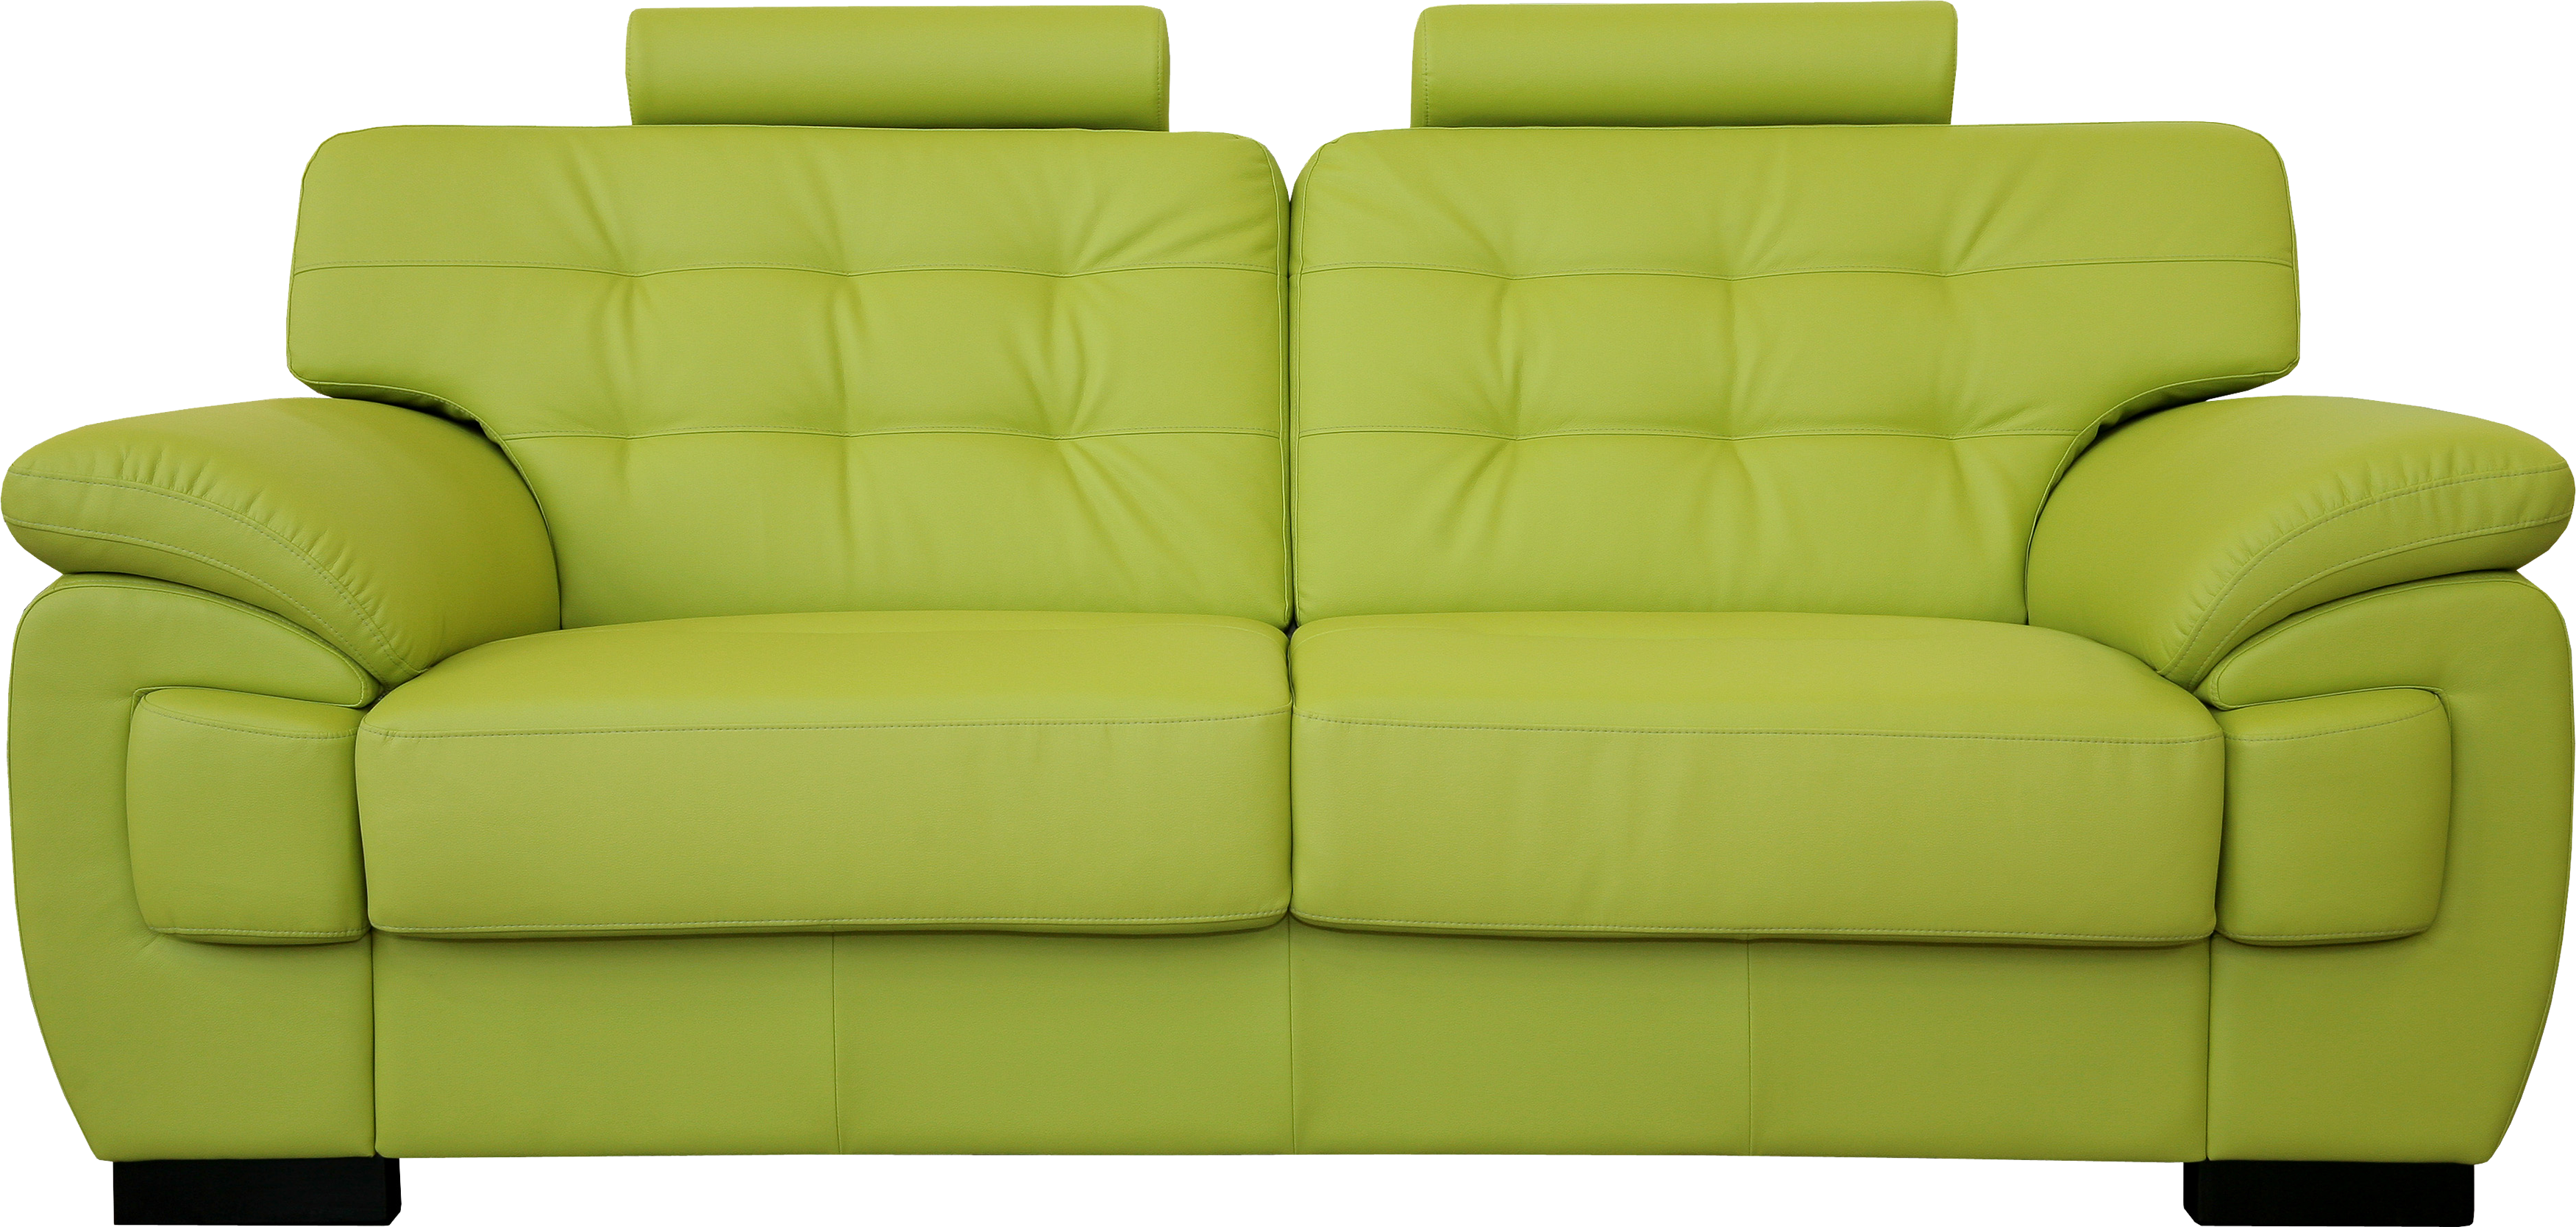 Spandex Sectional couch covers L shaped sofa cover elastic